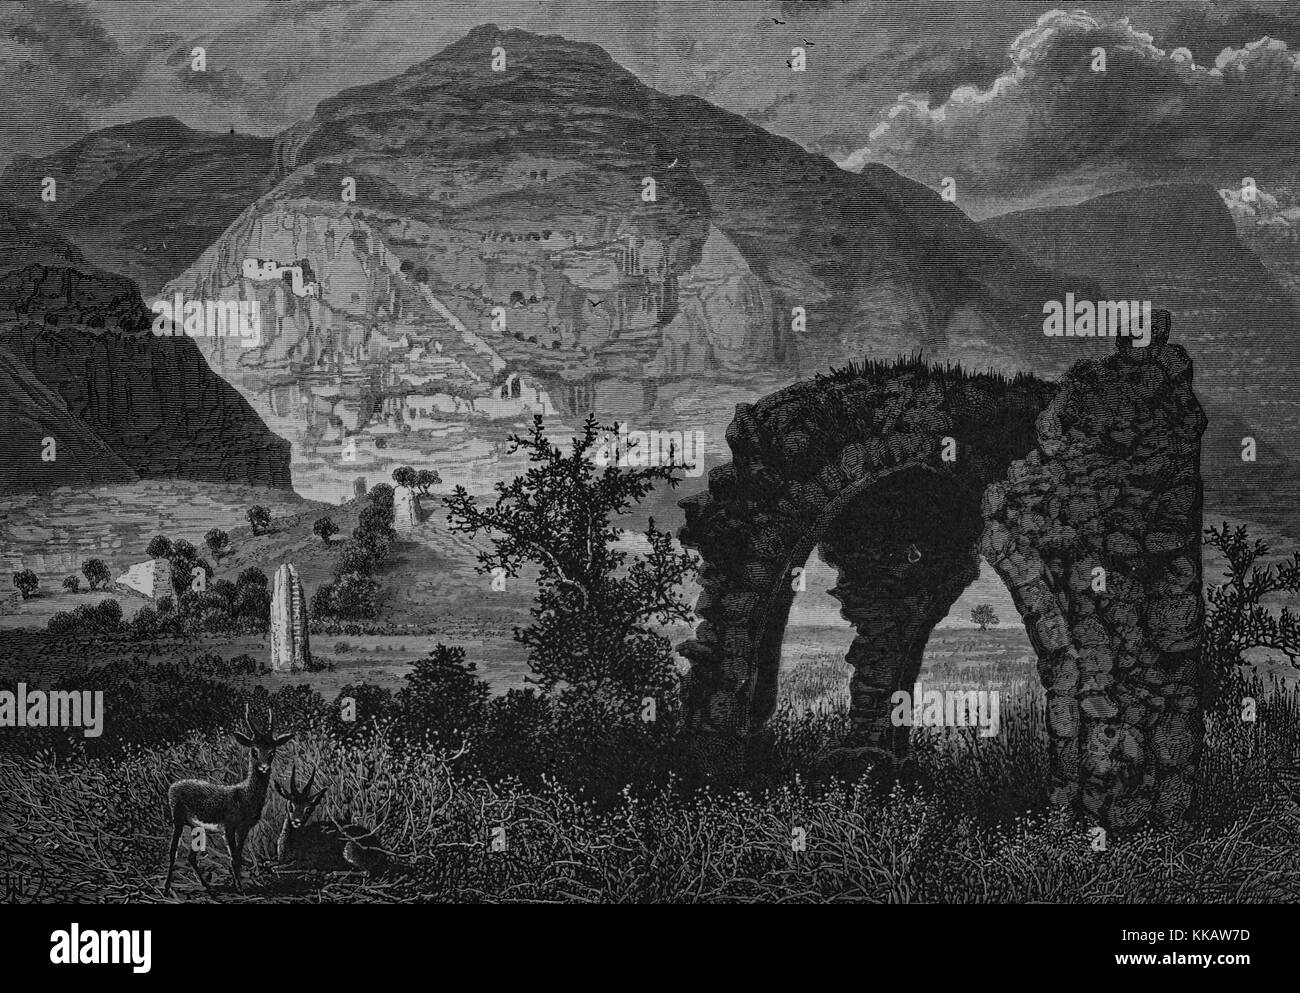 An etching that shows the landscape surrounding Mount Quarantania as seen from the ruins of the old city, Jericho, - Stock Image